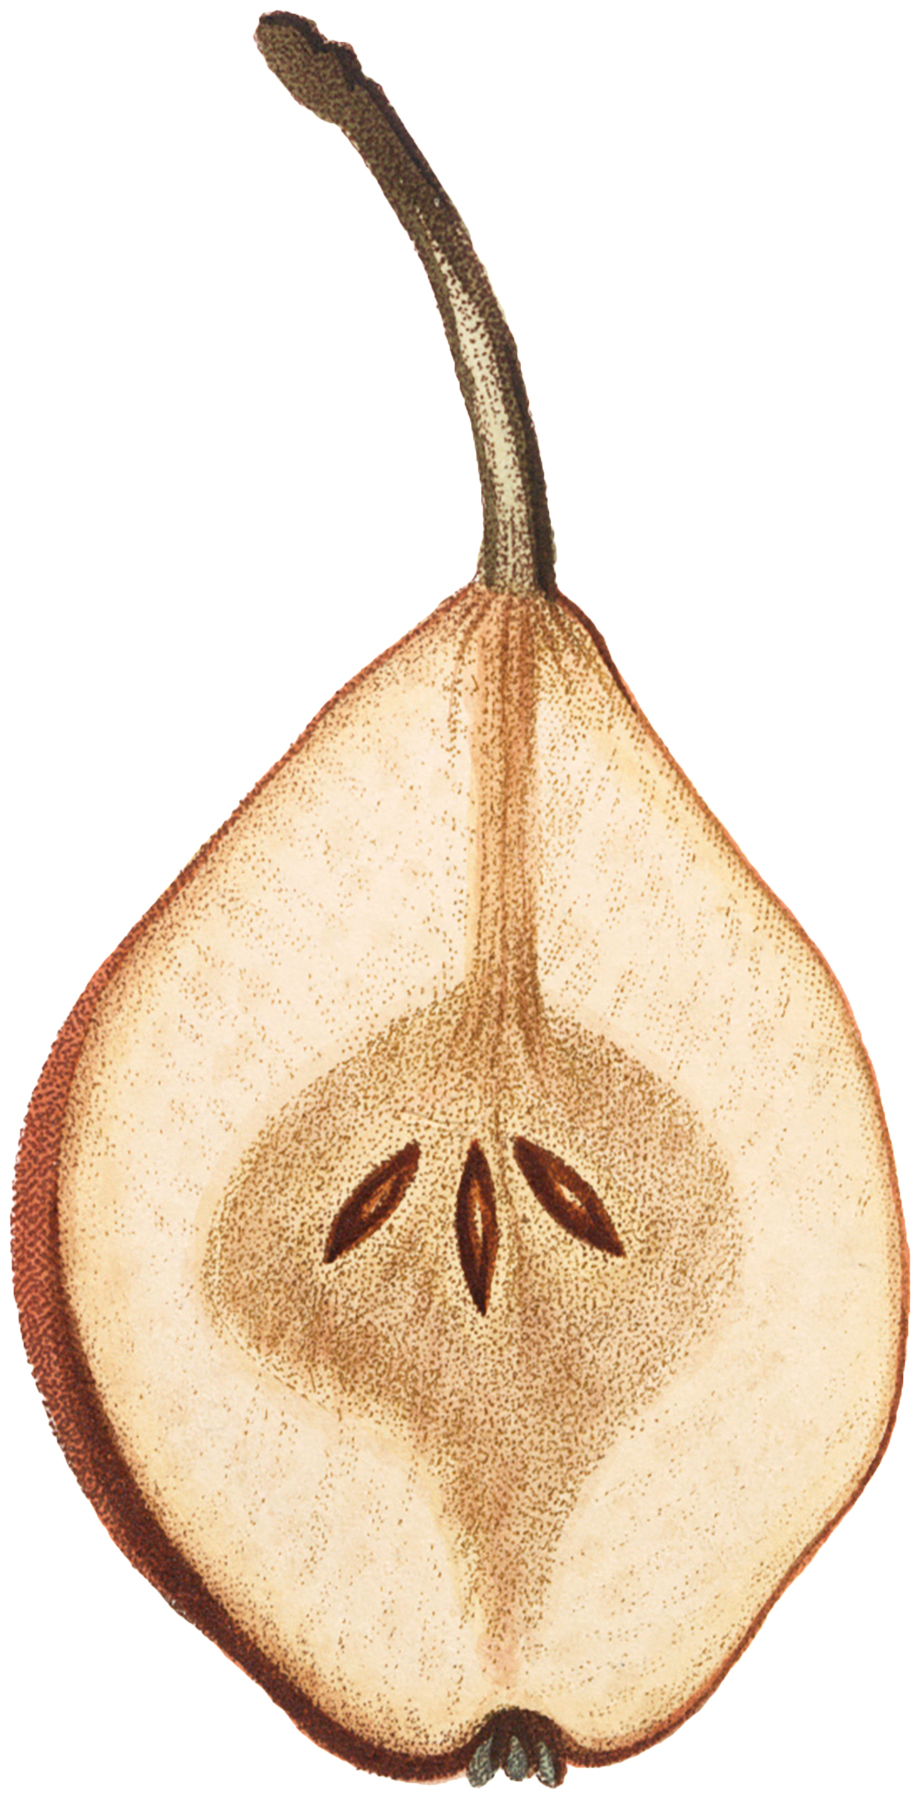 Vintage Sliced Pear Image